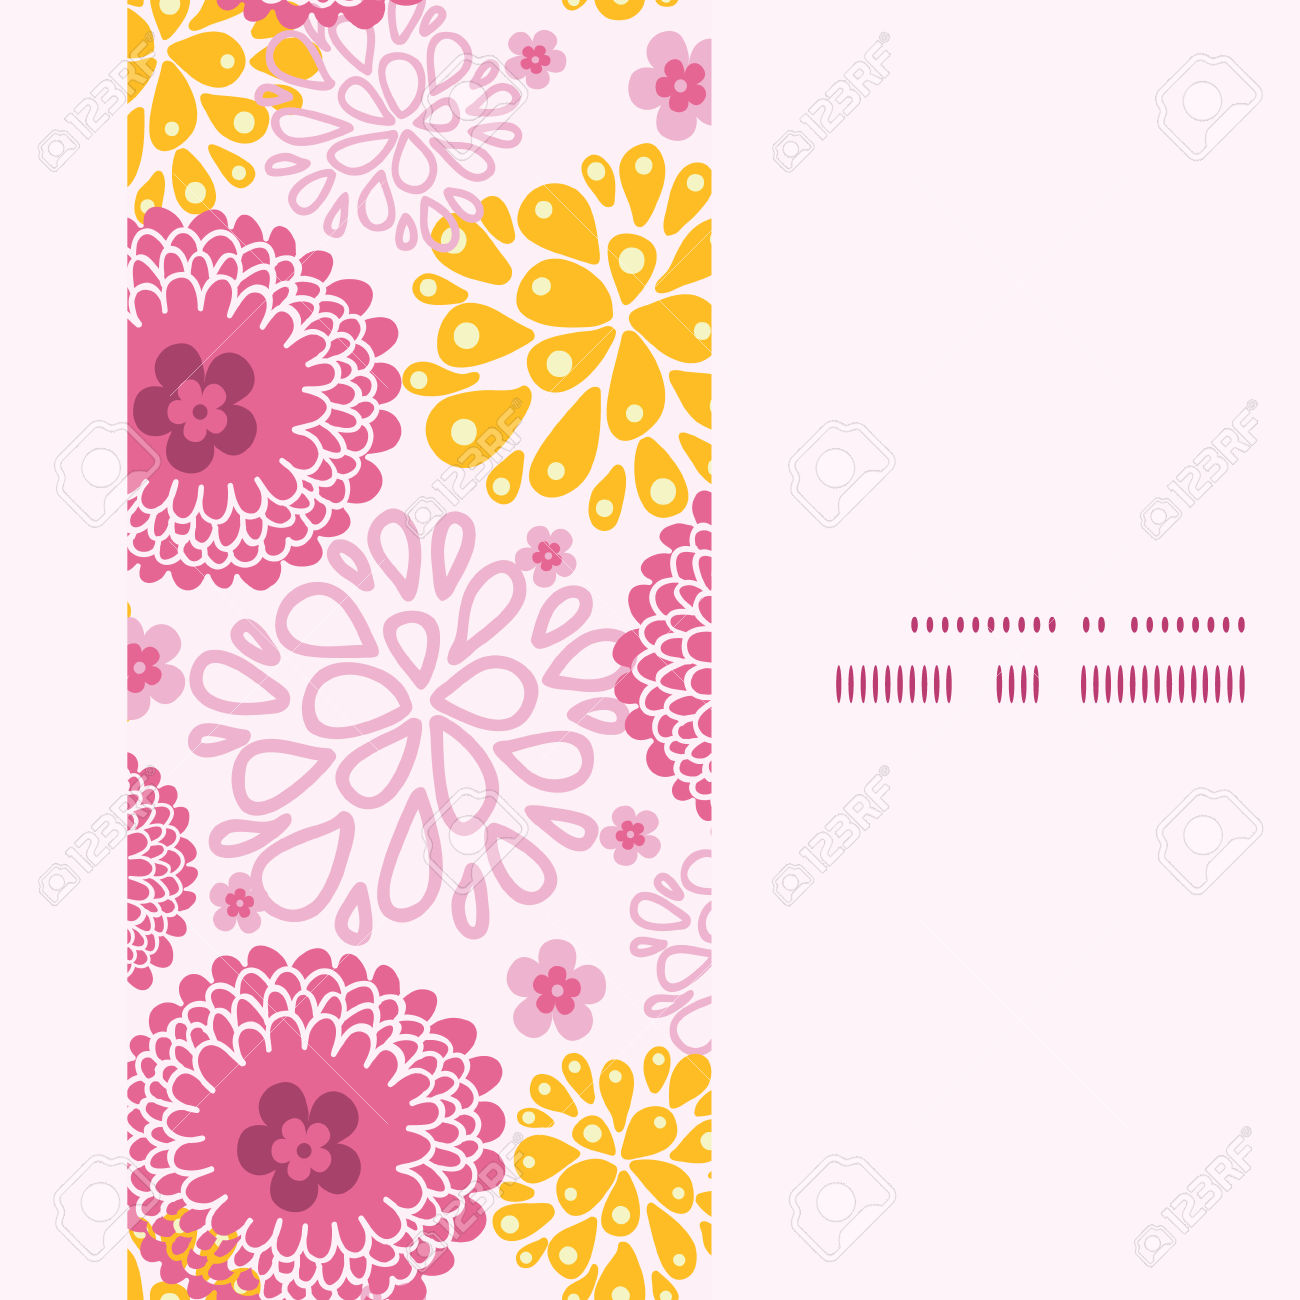 Flowers graphic design png freeuse library Flowers graphic design - ClipartFest png freeuse library